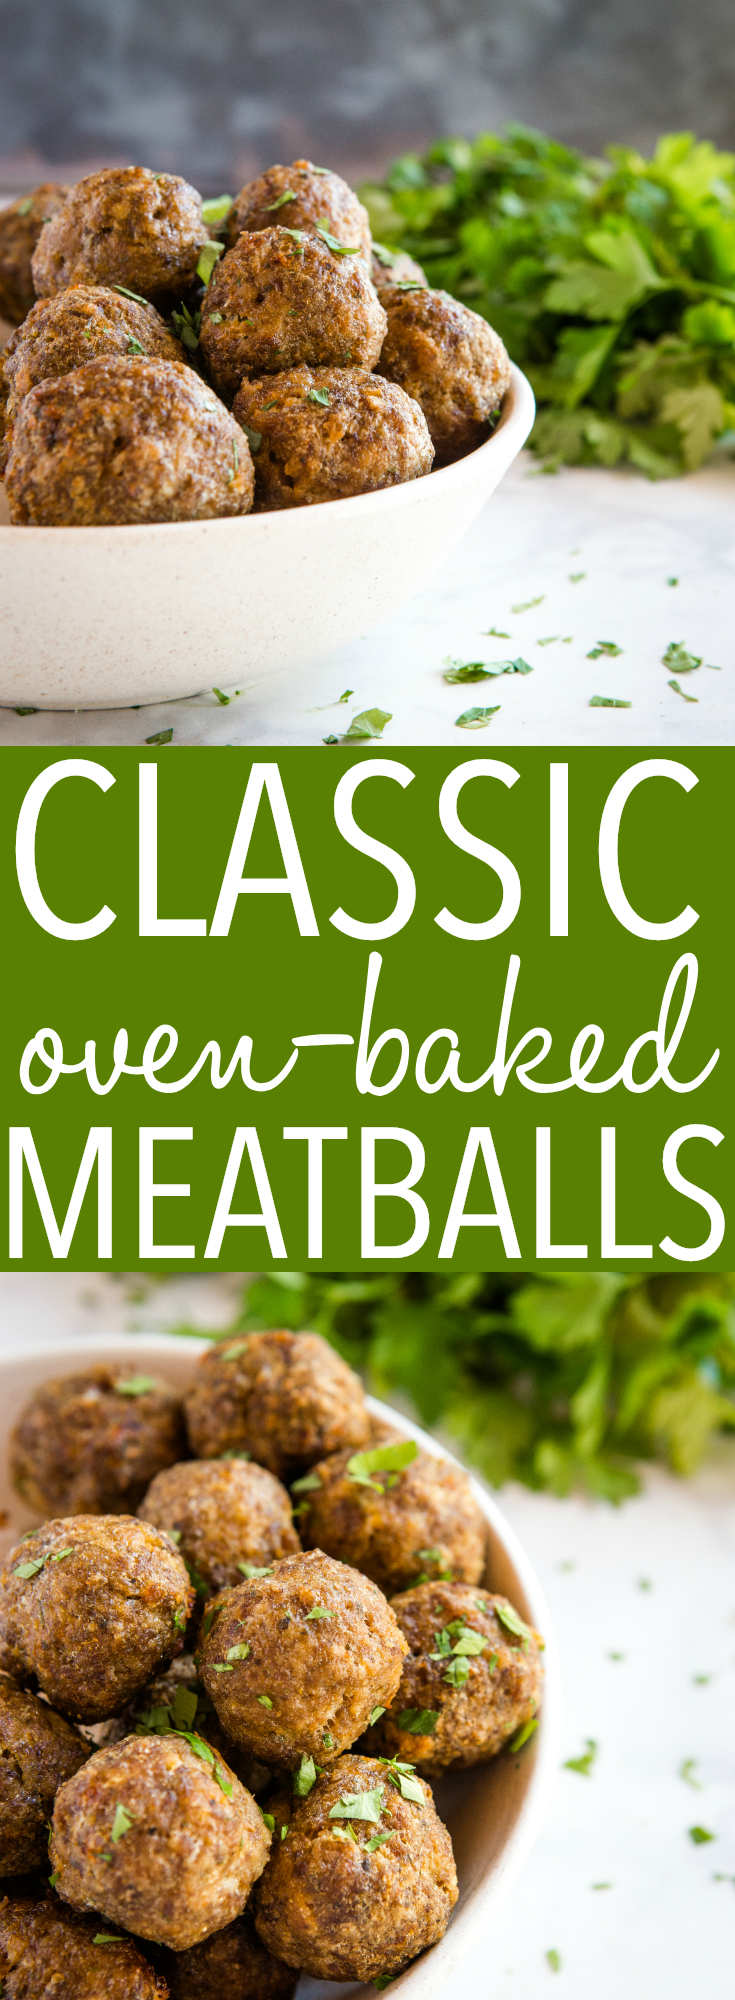 These Easy Classic Baked Meatballs are perfect as an appetizer or added to your favourite Italian dishes. Made from basic ingredients in under 30 minutes! Recipe from thebusybaker.ca! #meatballs #homemade #easy #recipe #baked #notfried #simple #italian #freezer #cooking #mealprep via @busybakerblog